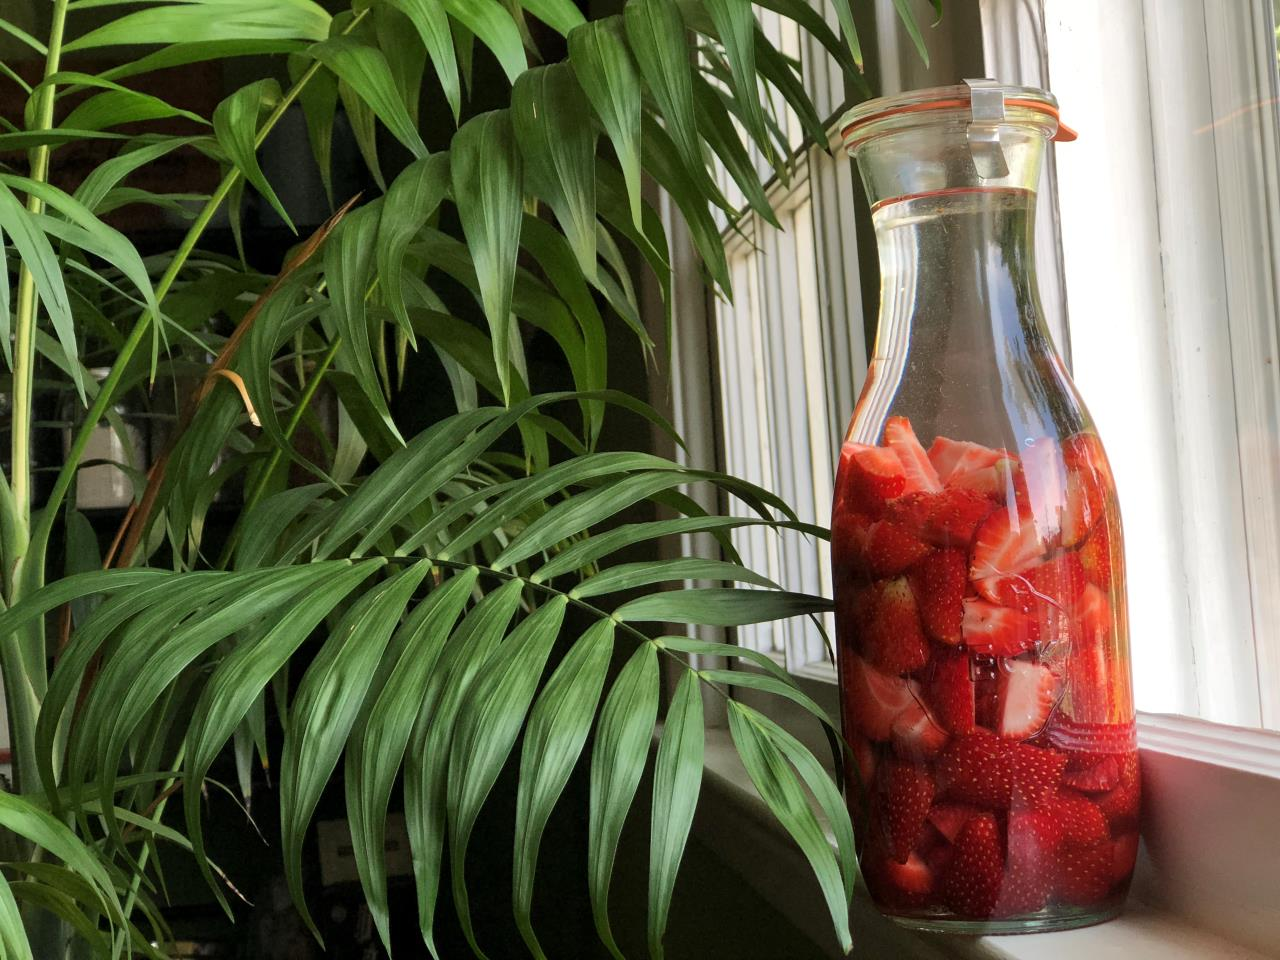 Homemade Strawberry Vodka - New Jersey